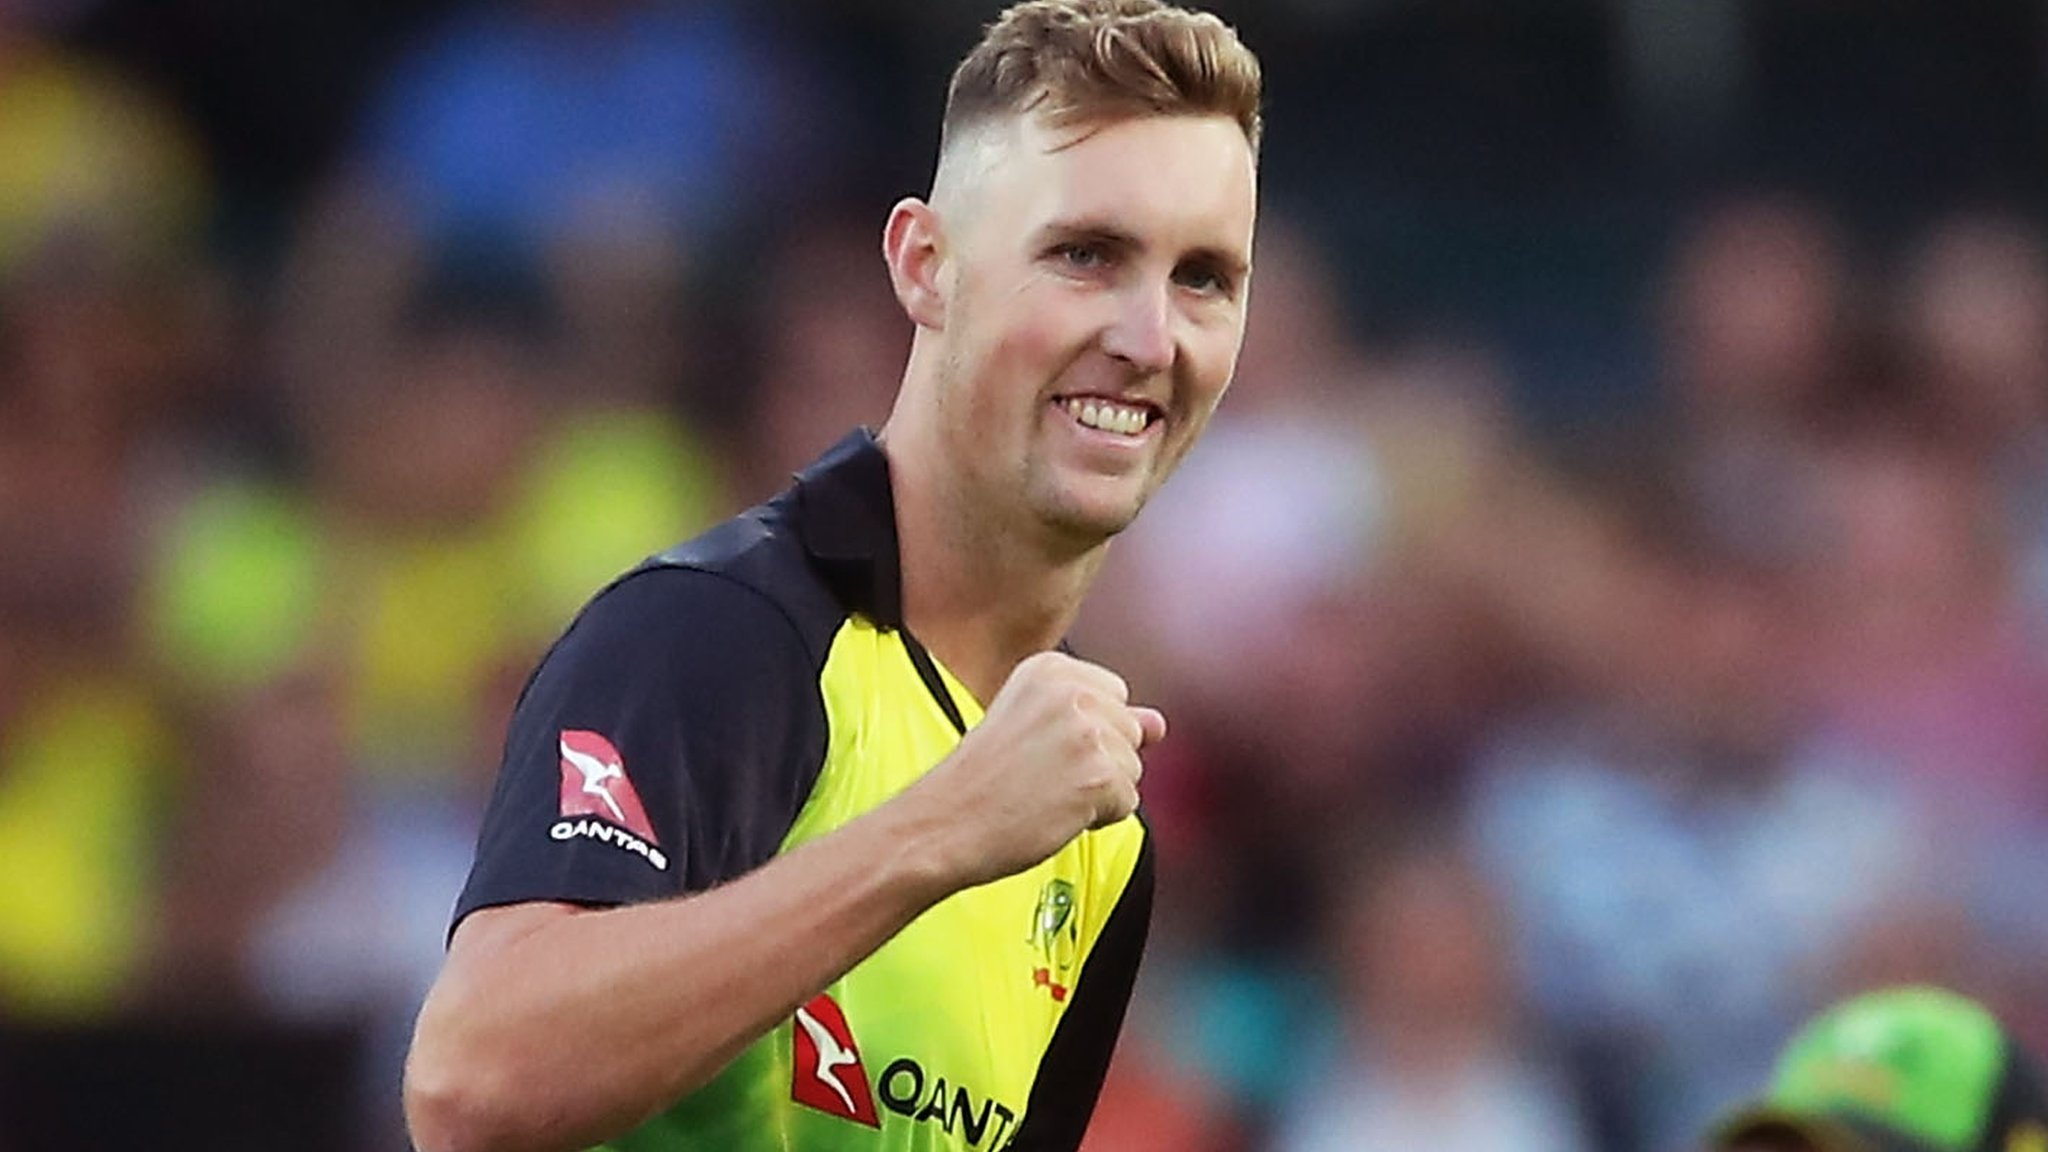 Billy Stanlake to play for Yorkshire in the Vitality T20 Blast